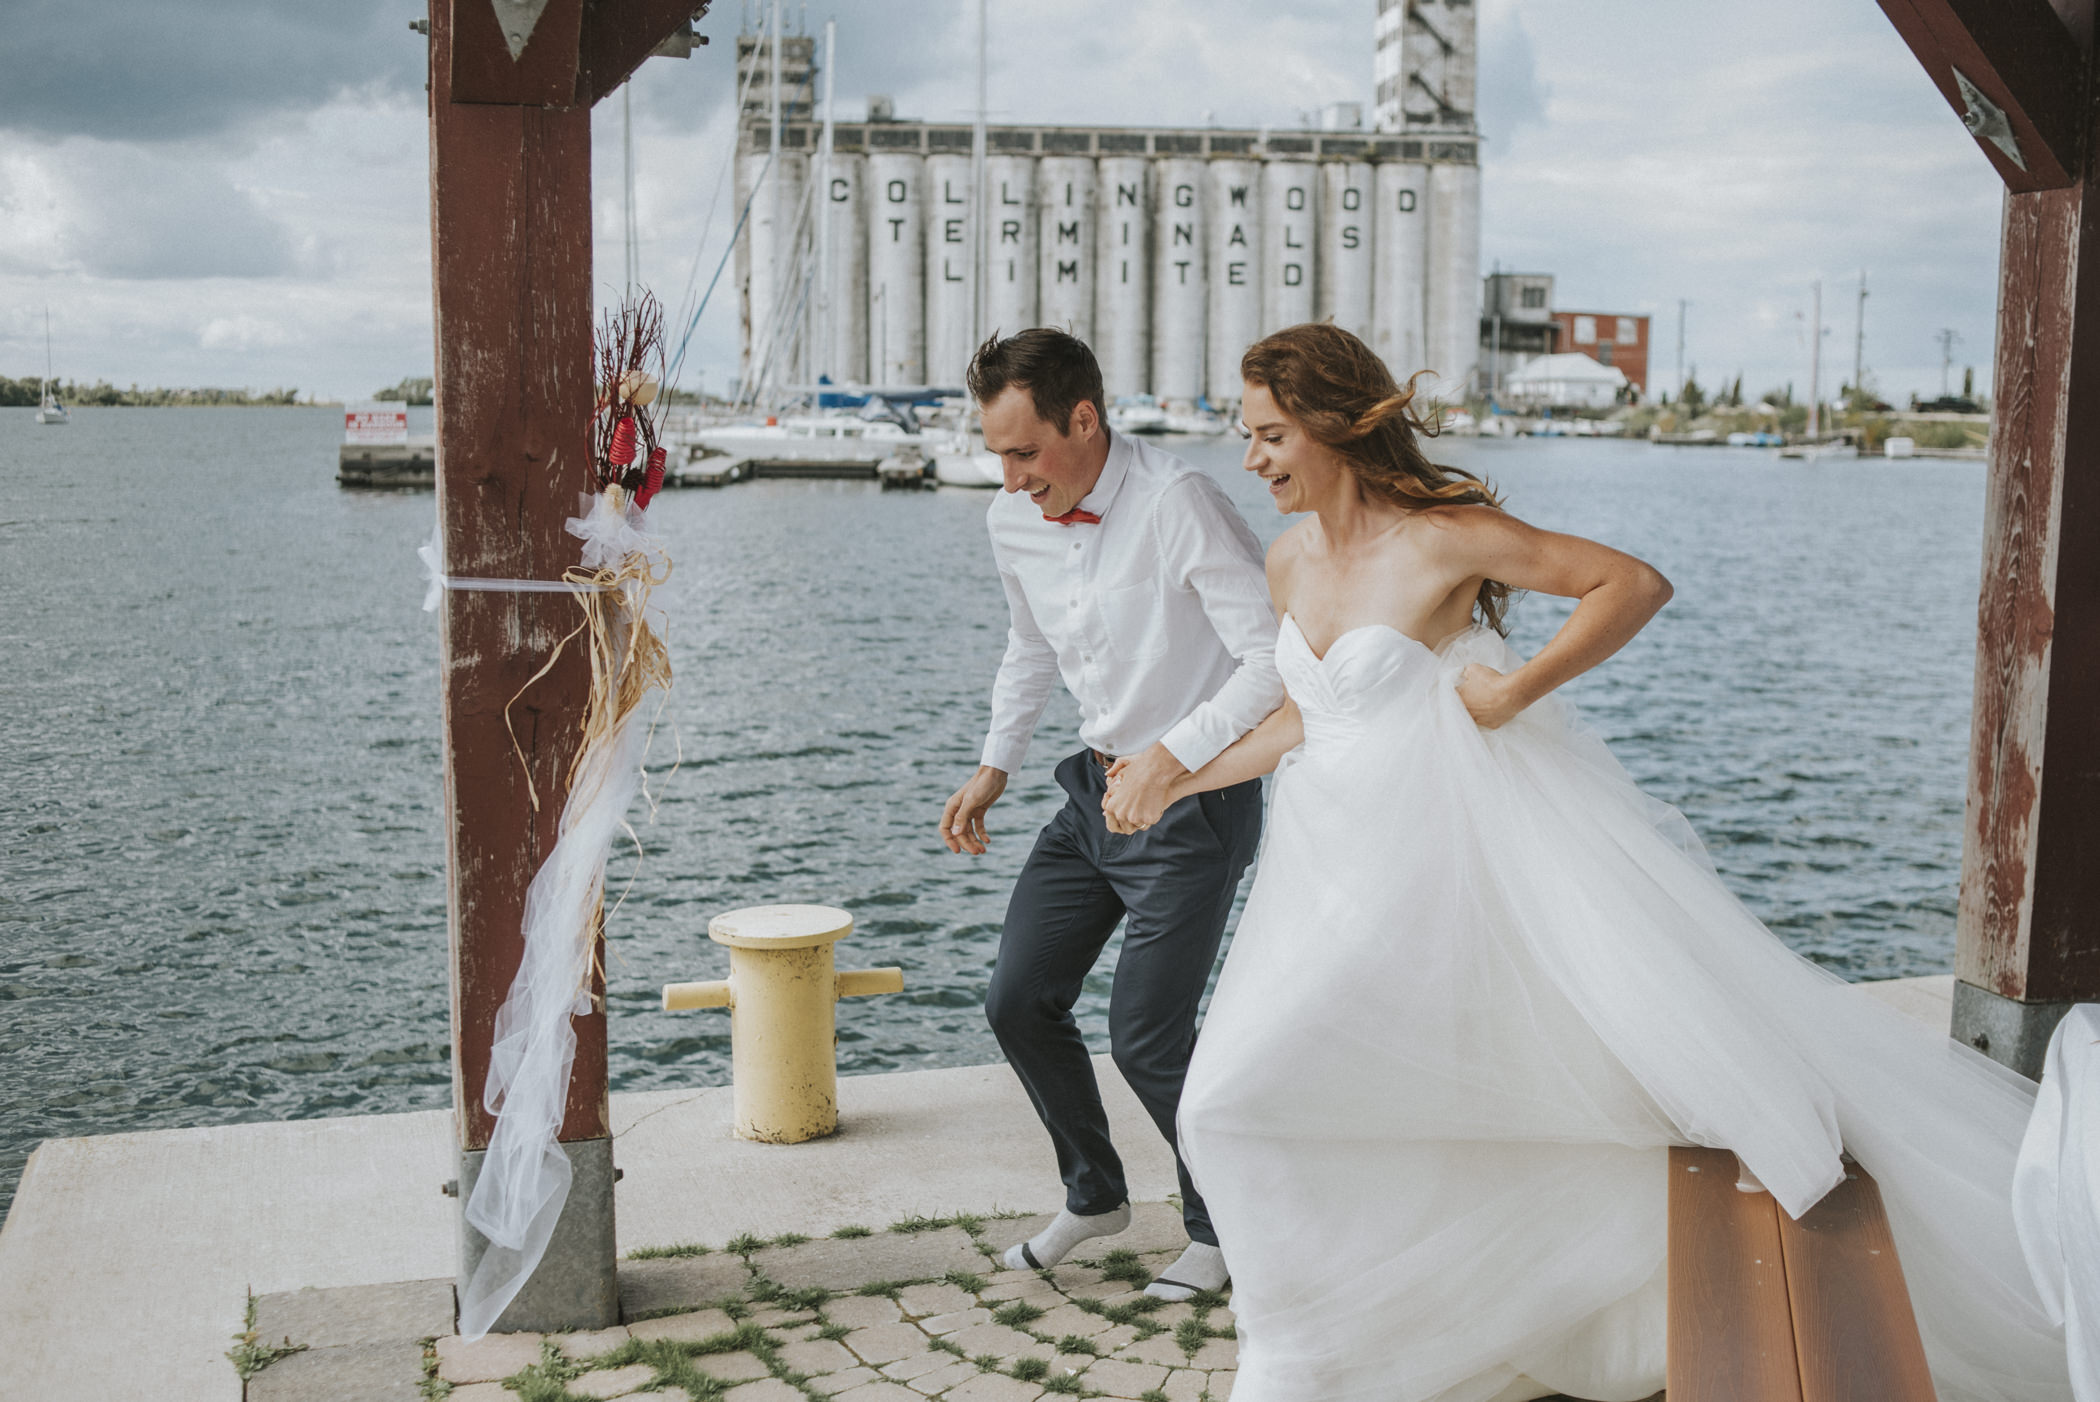 Bride and groom running down the pier / dock.